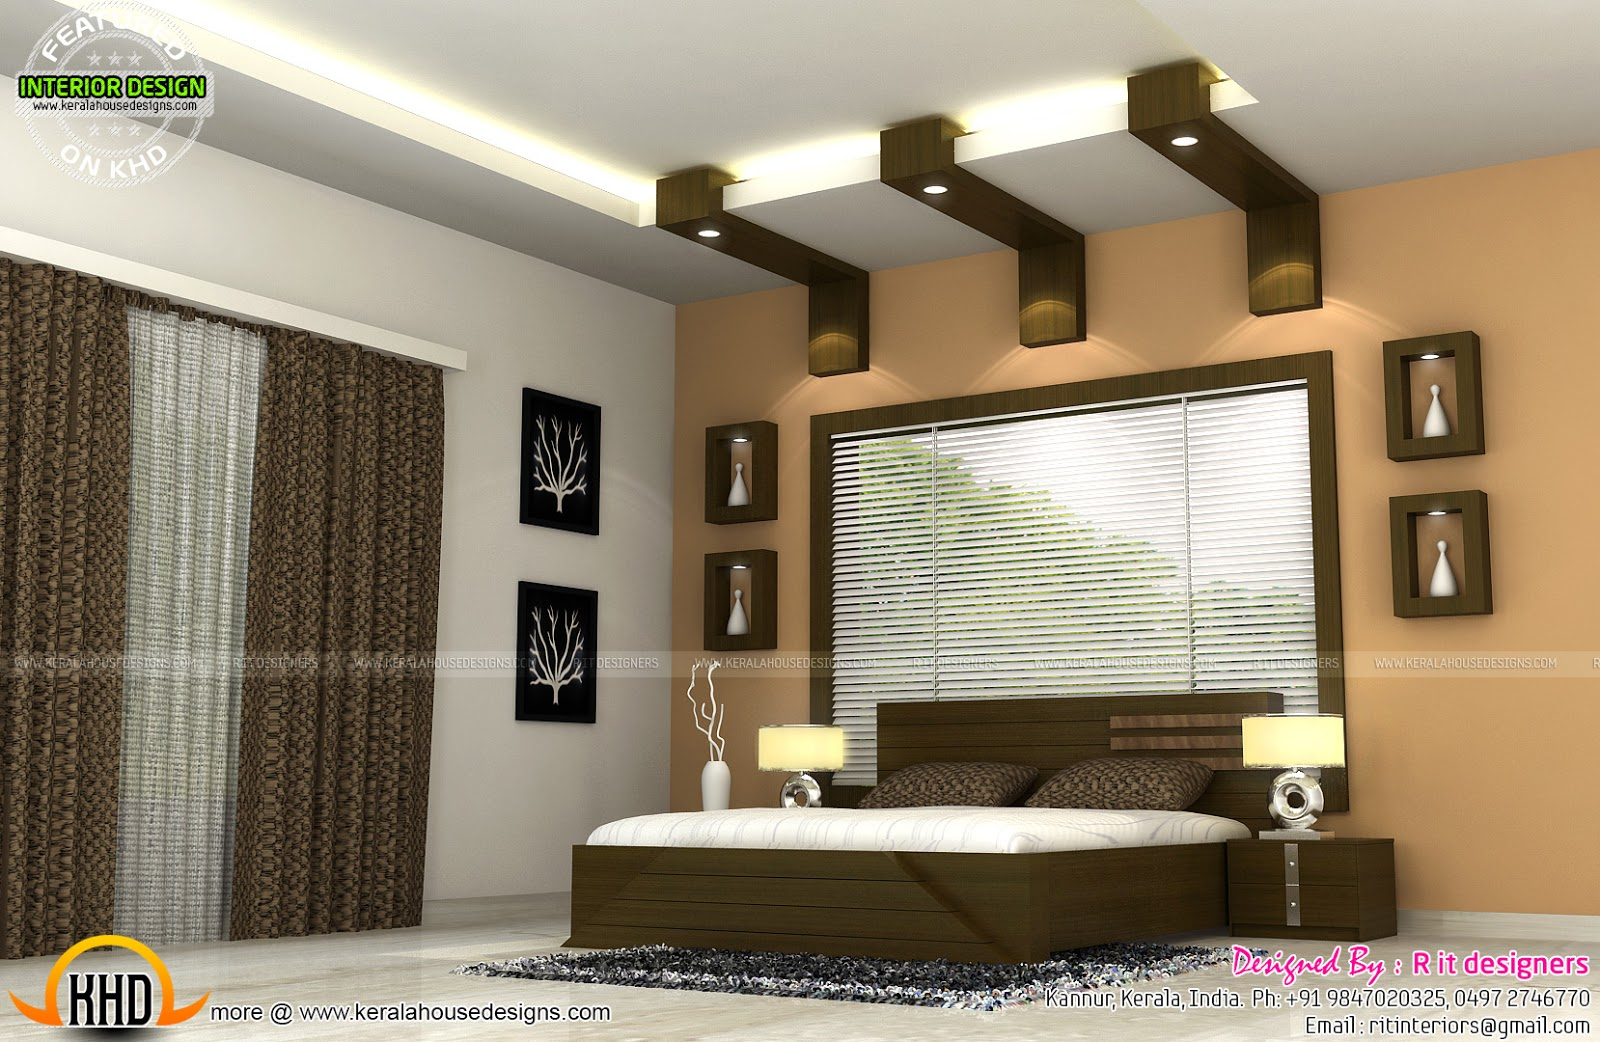 Interiors of bedrooms and kitchen kerala home design and Home interior design bedroom